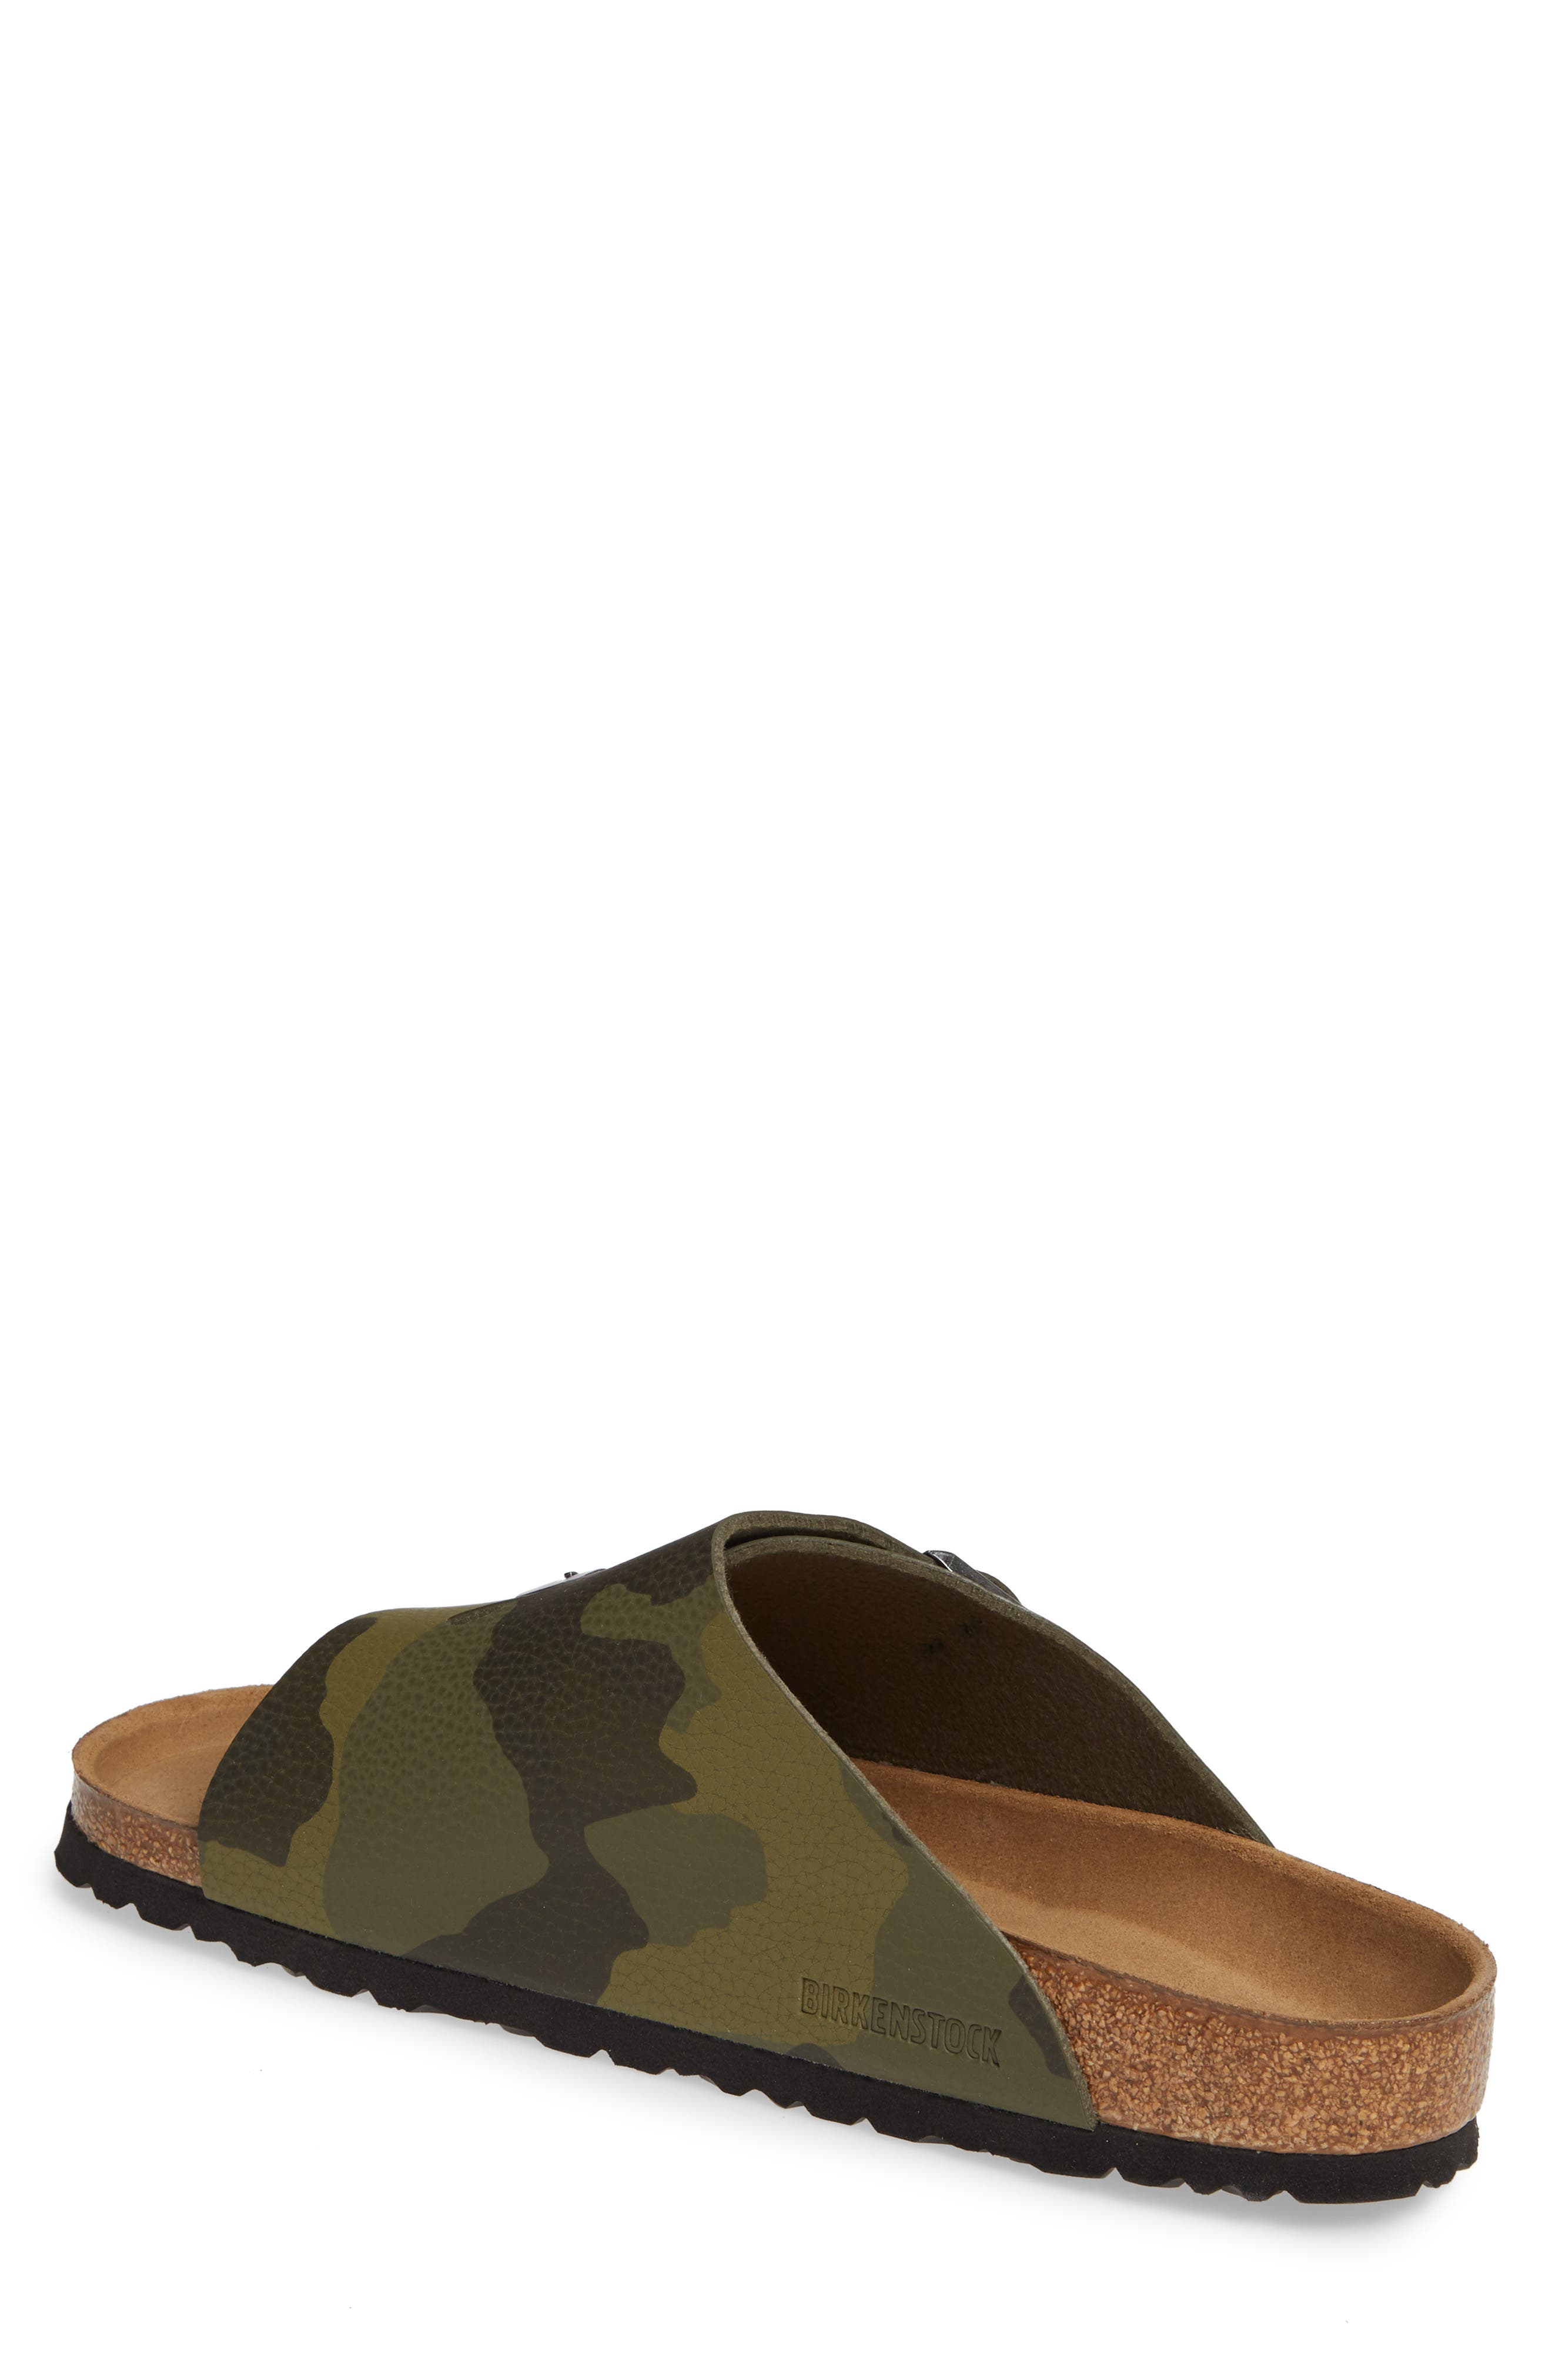 BIRKENSTOCK, Zurich Slide Sandal, Alternate thumbnail 2, color, DESERT CAMO GREEN